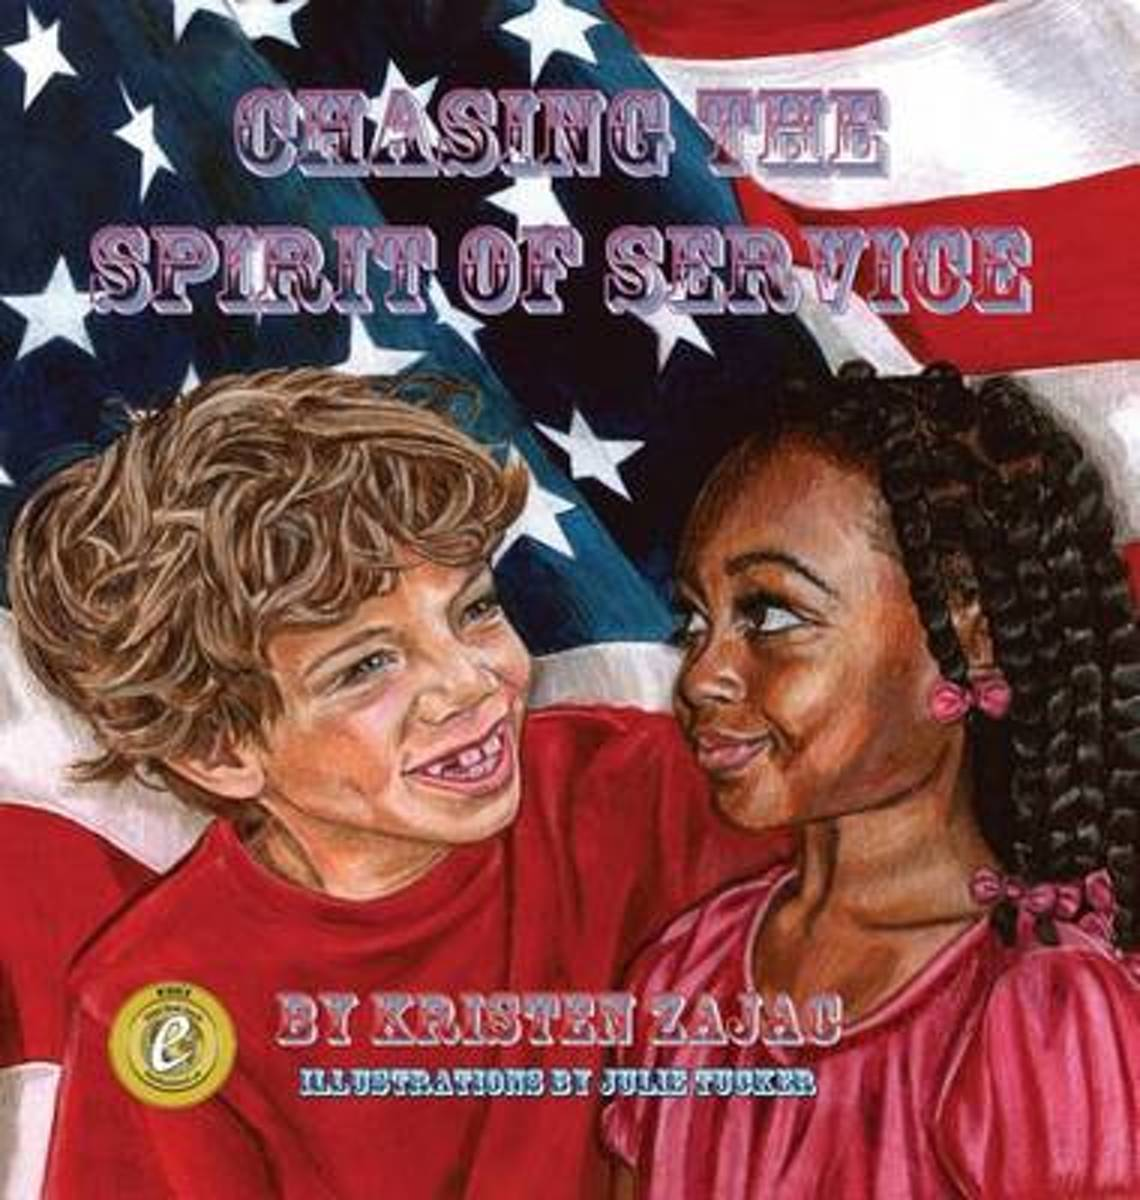 Chasing the Spirit of Service